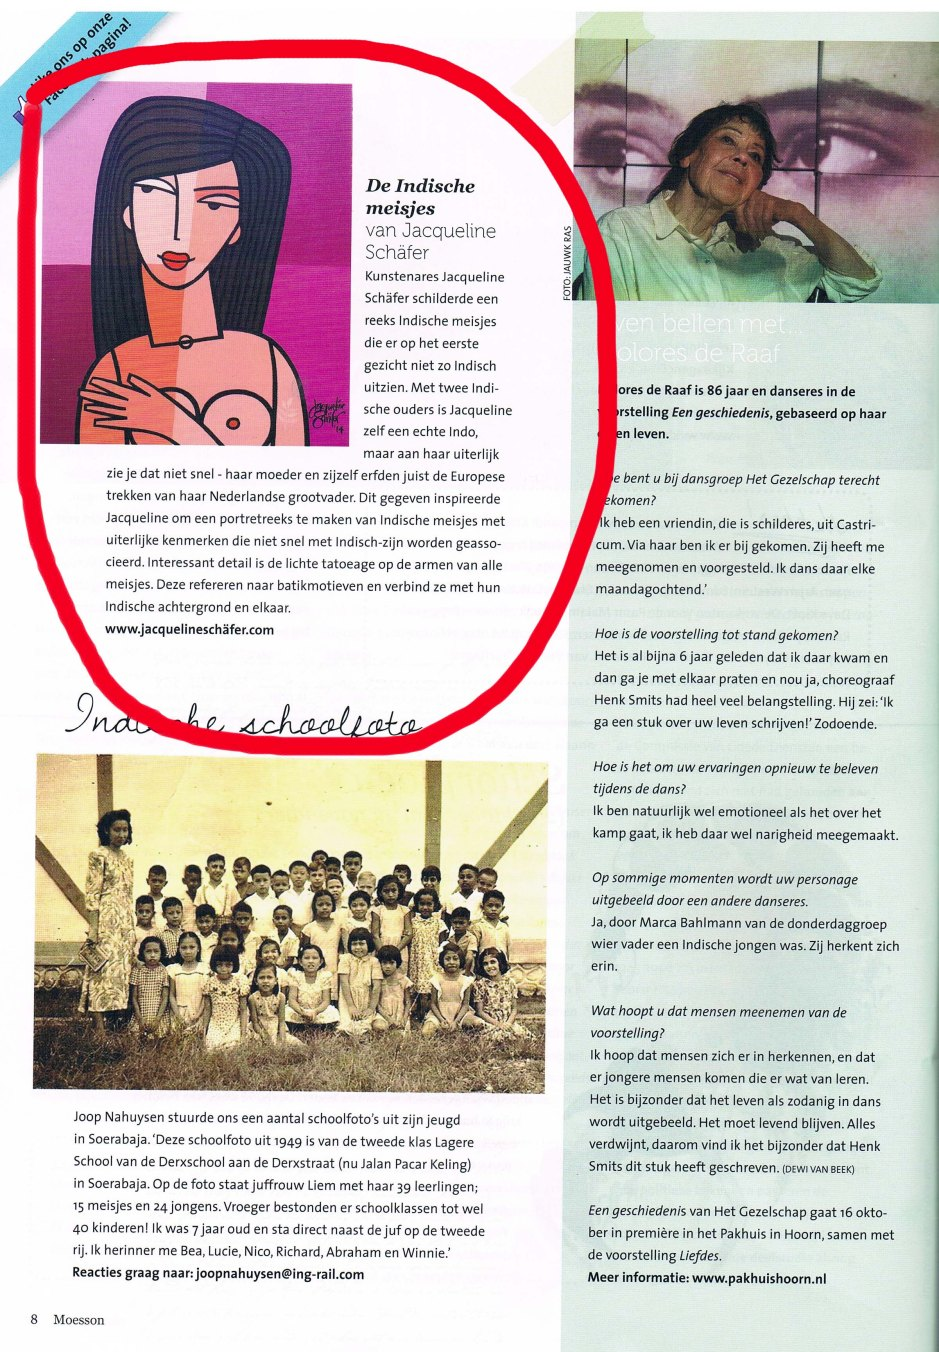 Article about the 'Indonesian girls' - in Moesson Magazine.